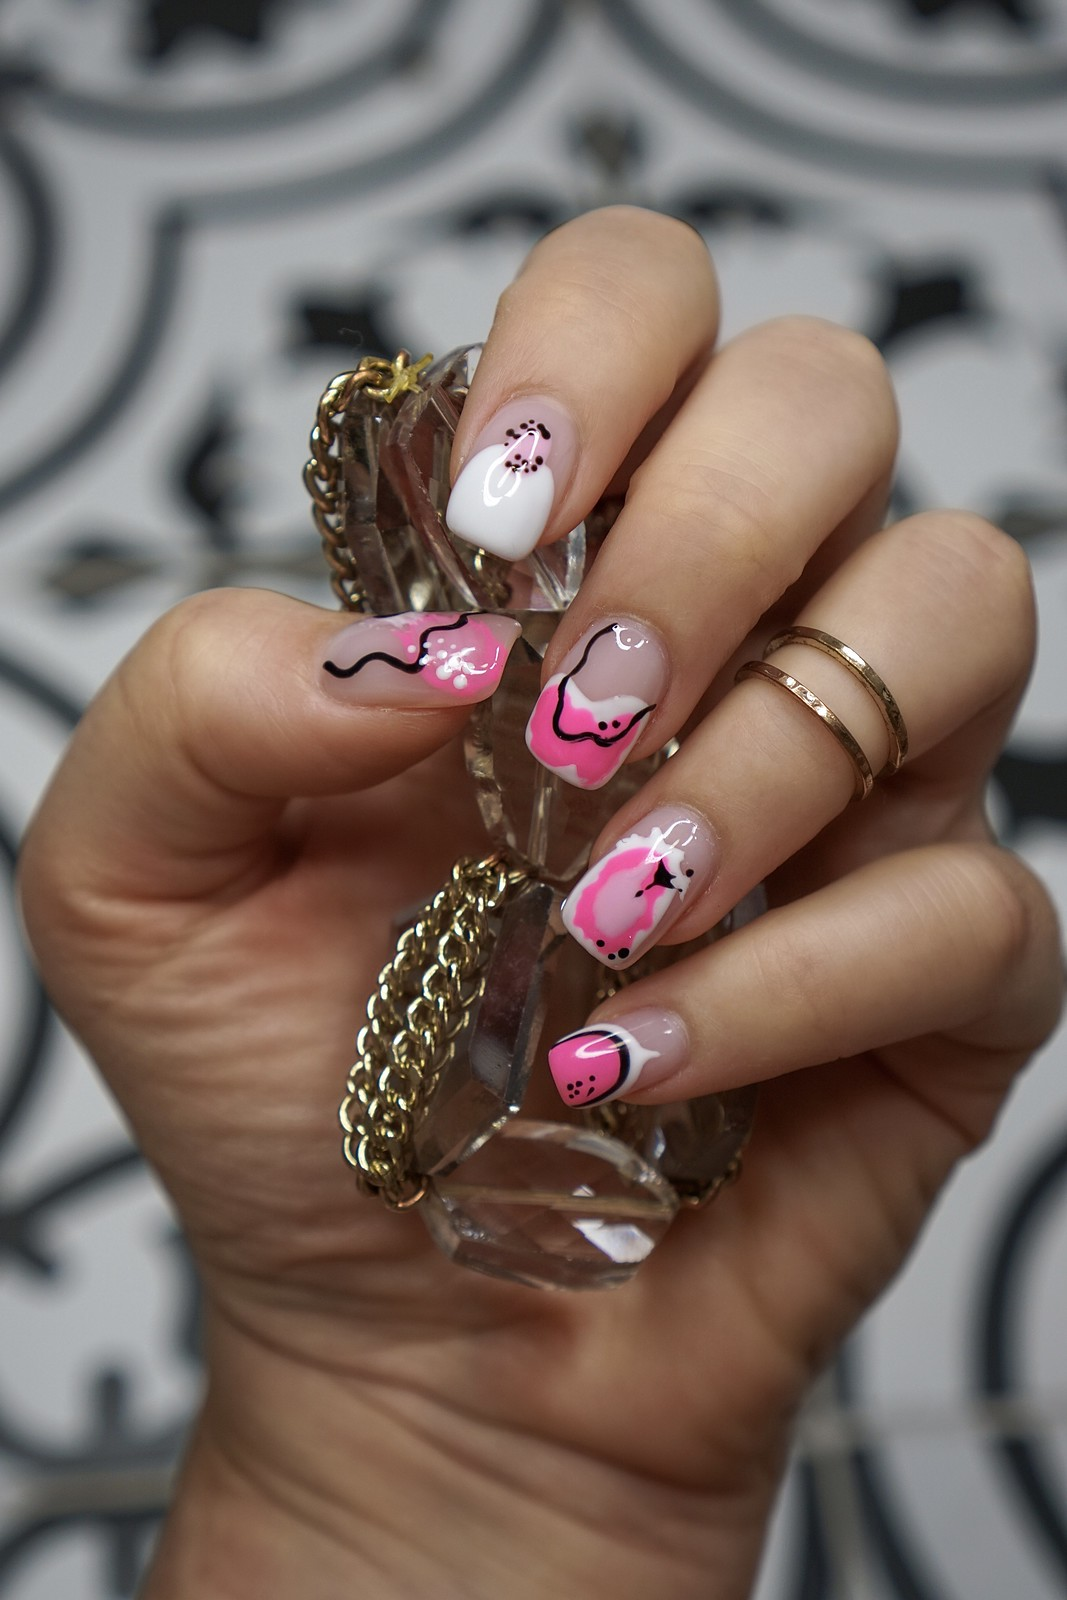 Manicure of the Month: Pink Abstract Nail Art | Pinterest Approved Nail Art | Chic Nail Designs | Square Nails | UV Gel | Color Gel | Nail Ideas | Hot Pink Nail Polish